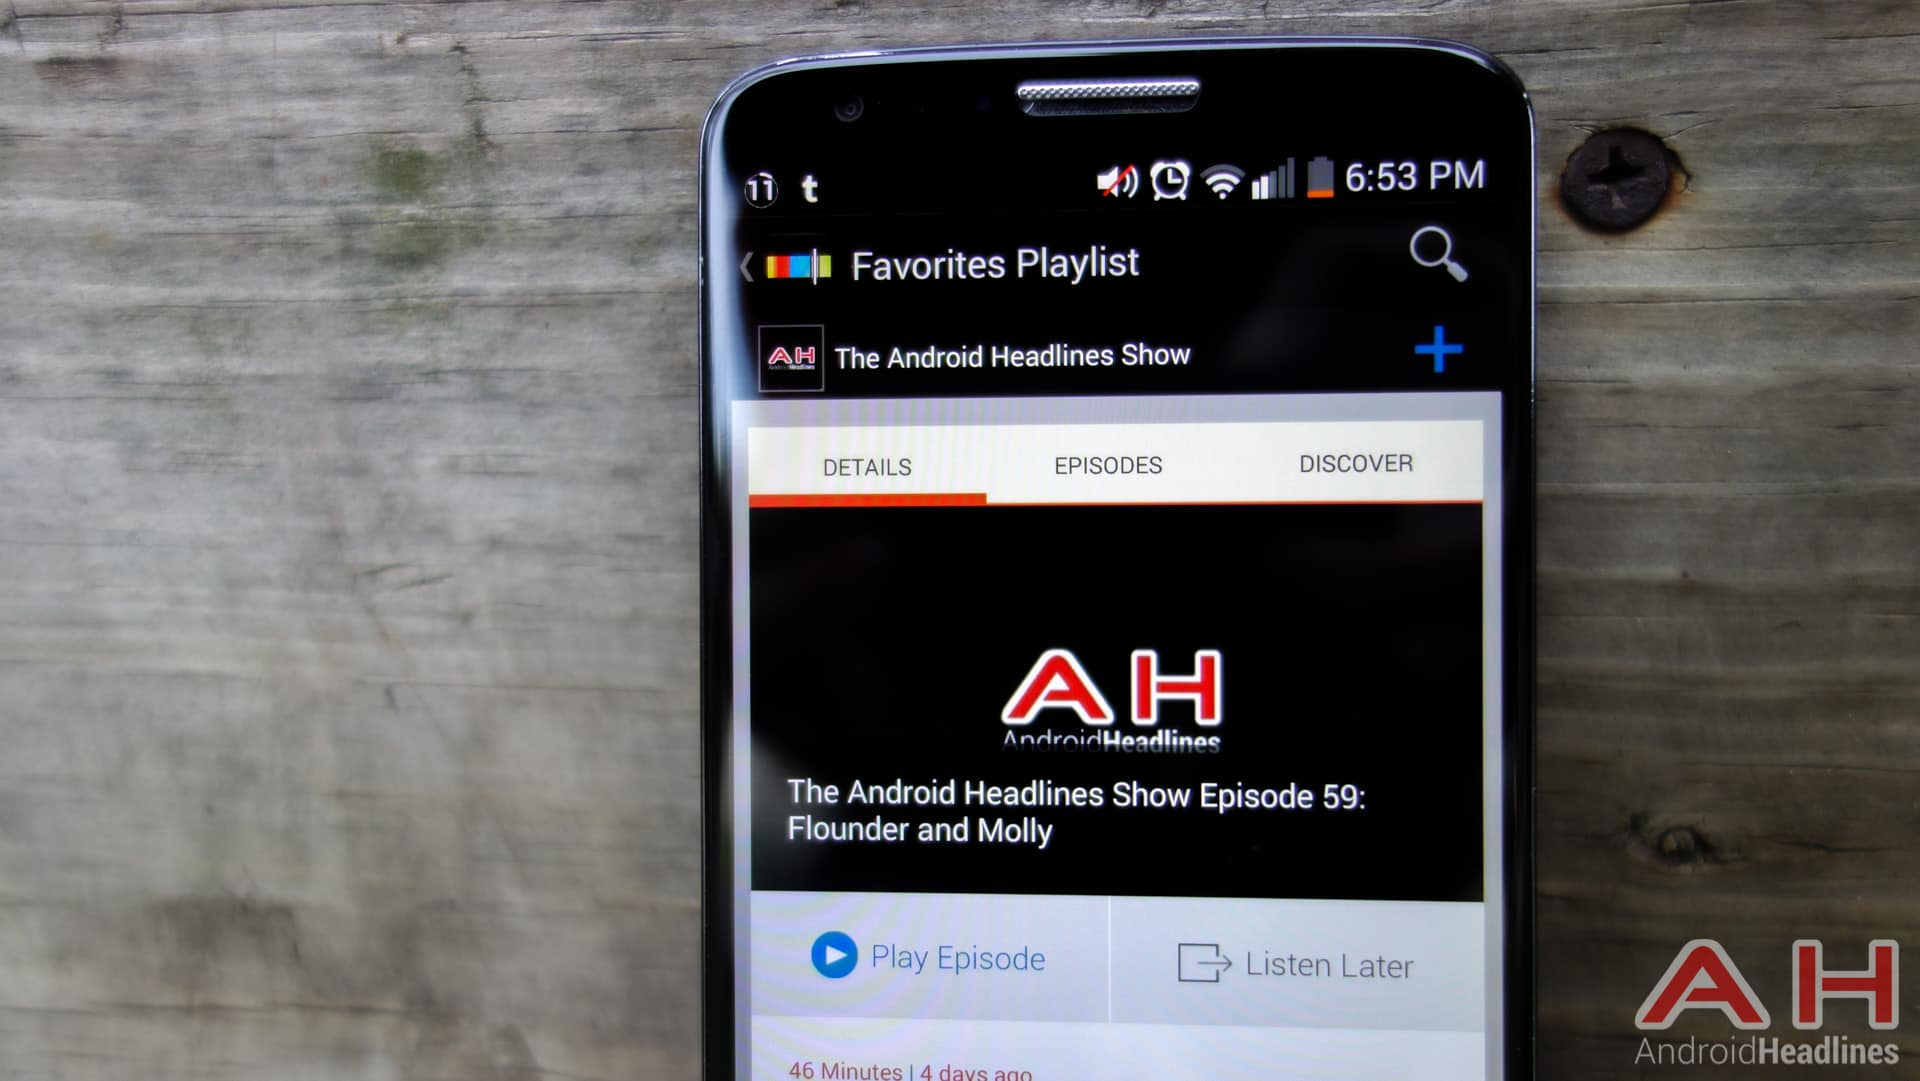 The Android Headlines Podcast #69 Is Live! Take It With You Into The Weekend